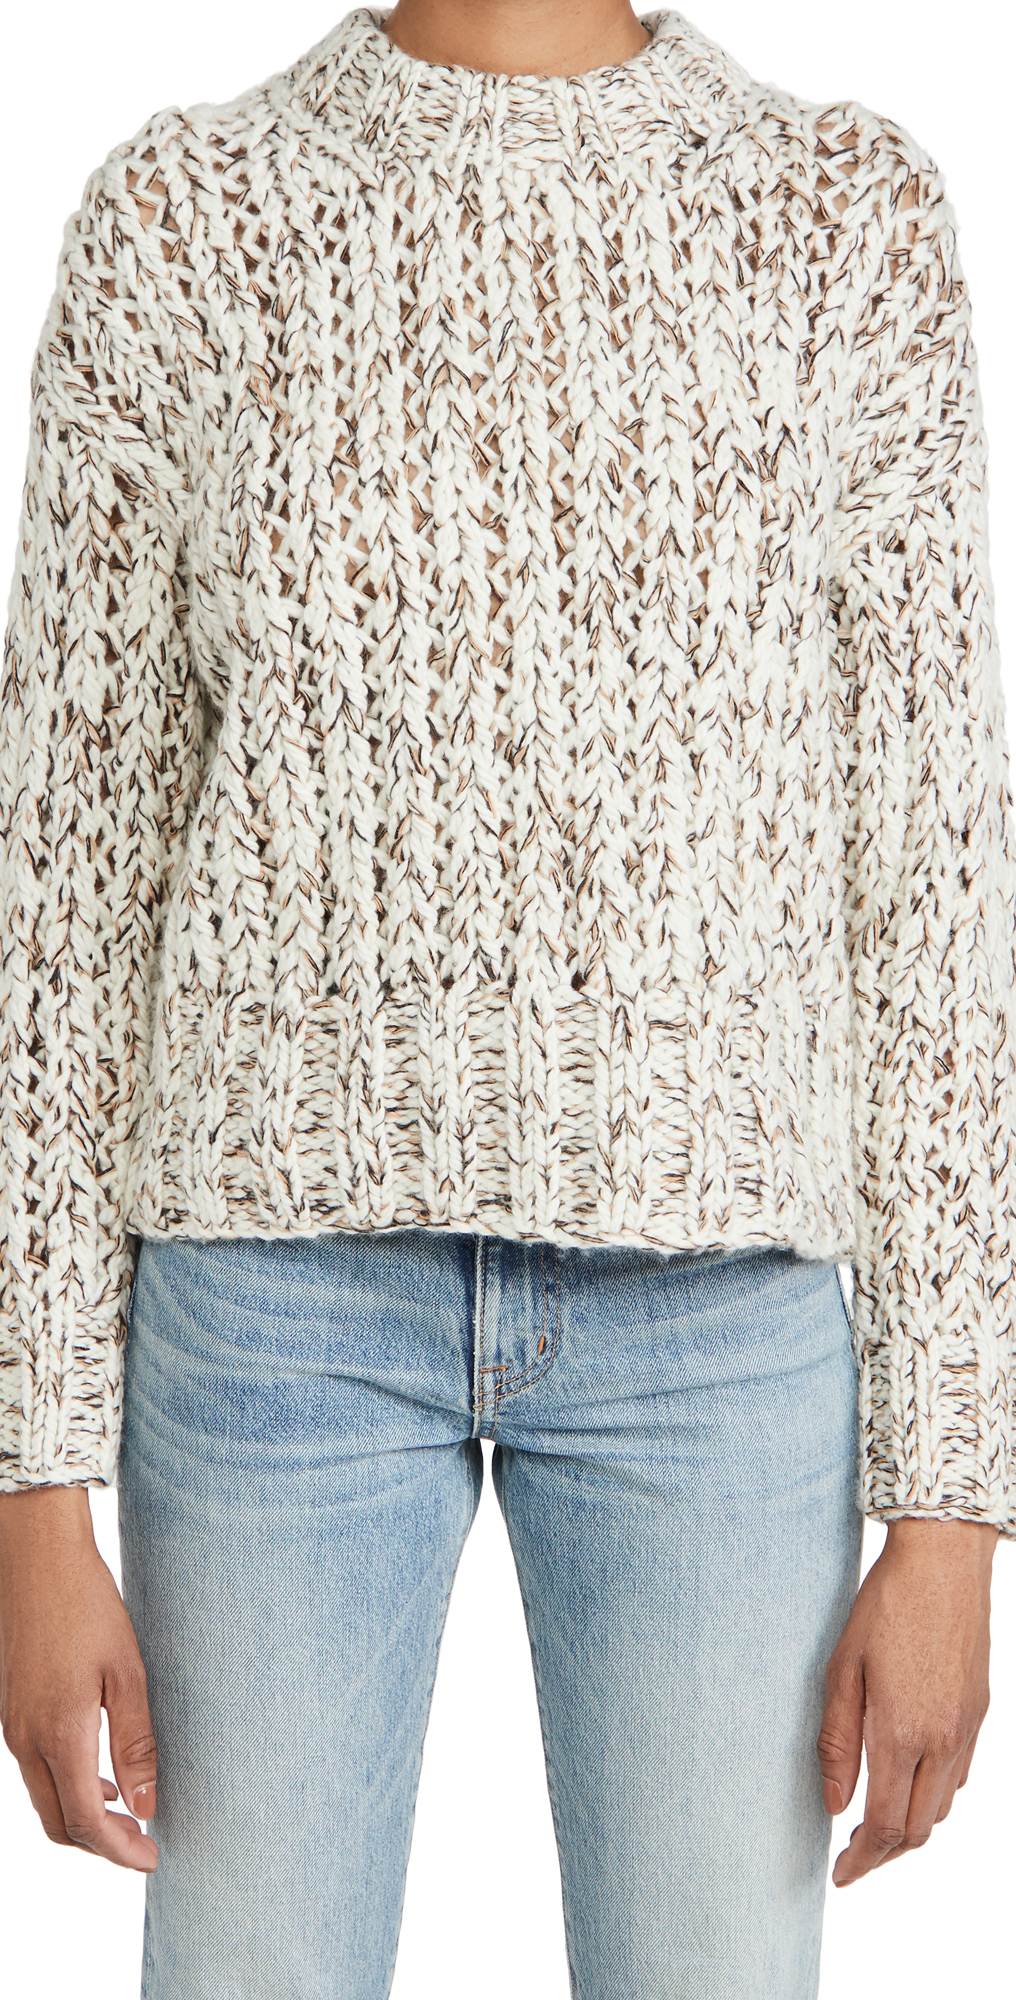 Theory Hand Knit Top